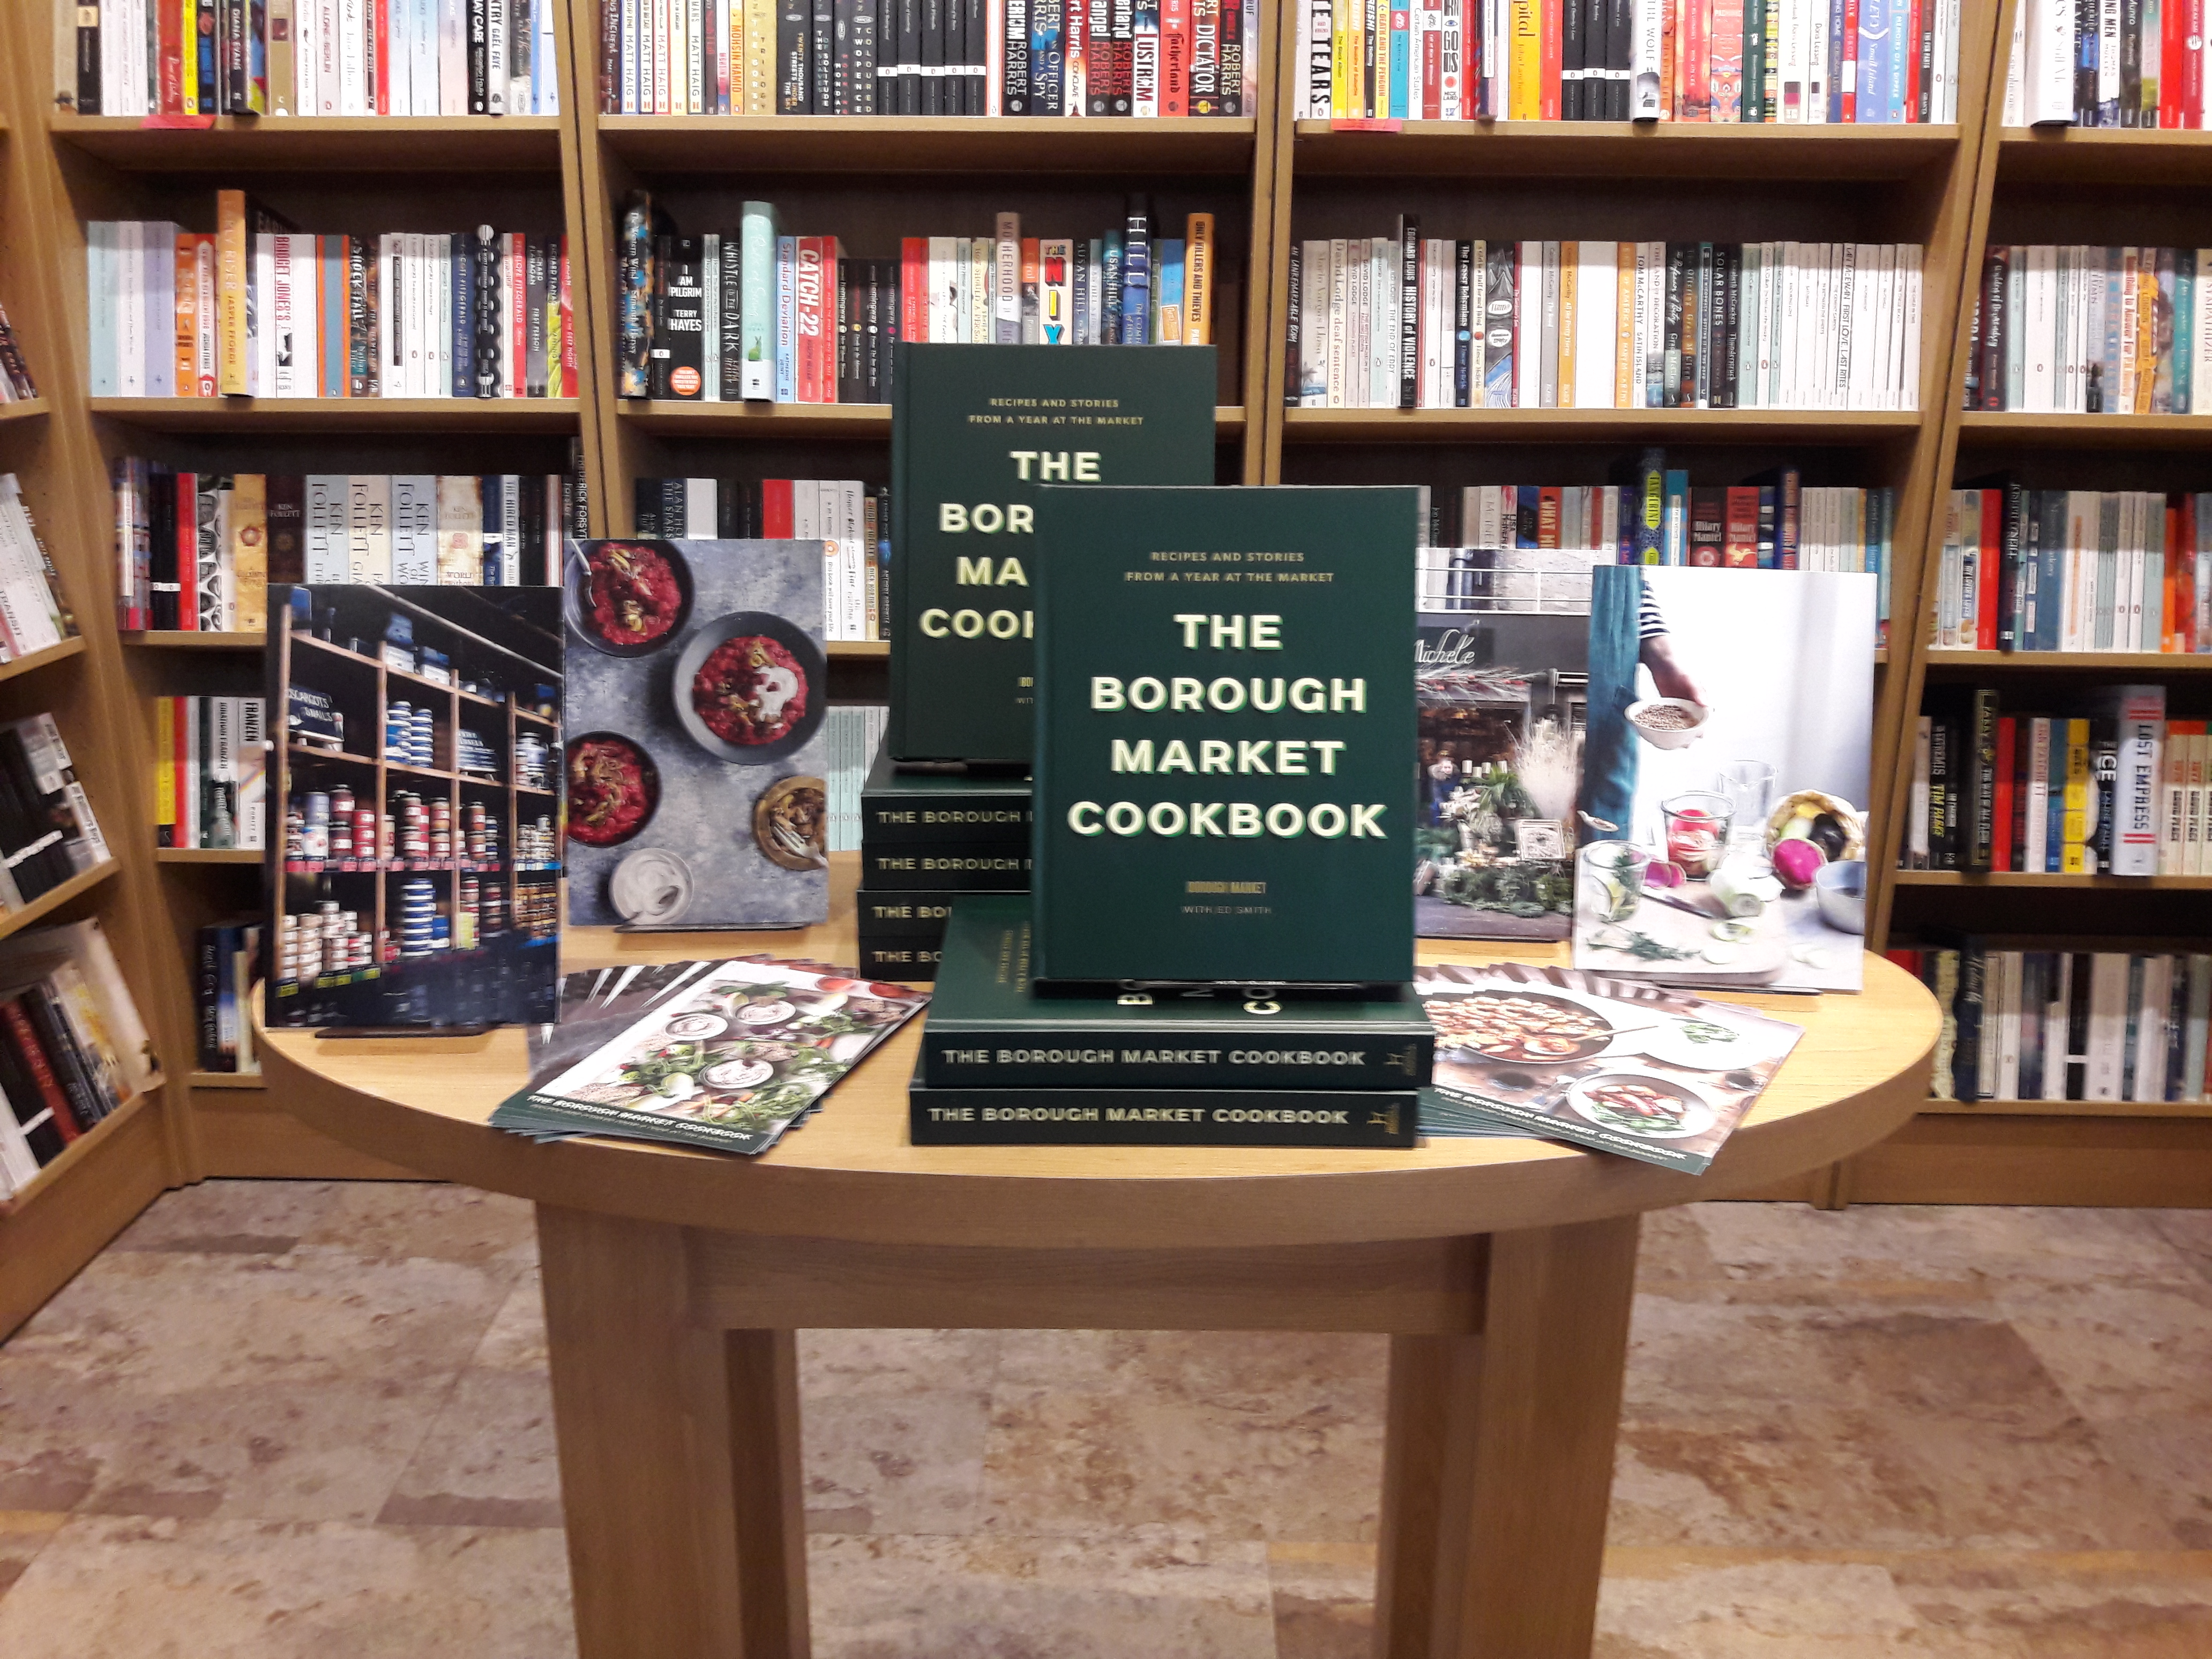 Borough Market Cookbook display